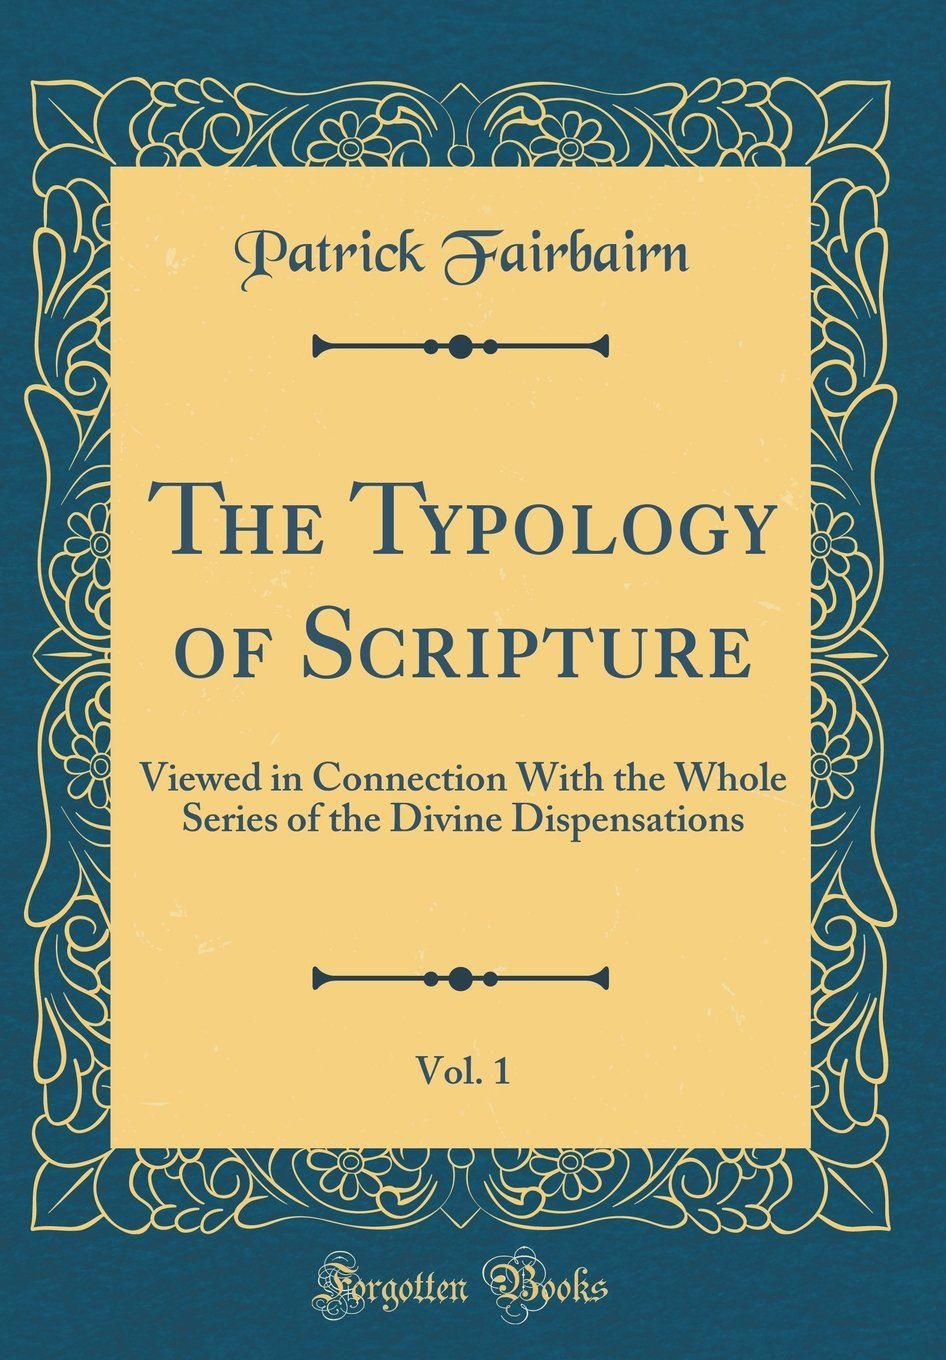 Read Online The Typology of Scripture, Vol. 1: Viewed in Connection With the Whole Series of the Divine Dispensations (Classic Reprint) PDF